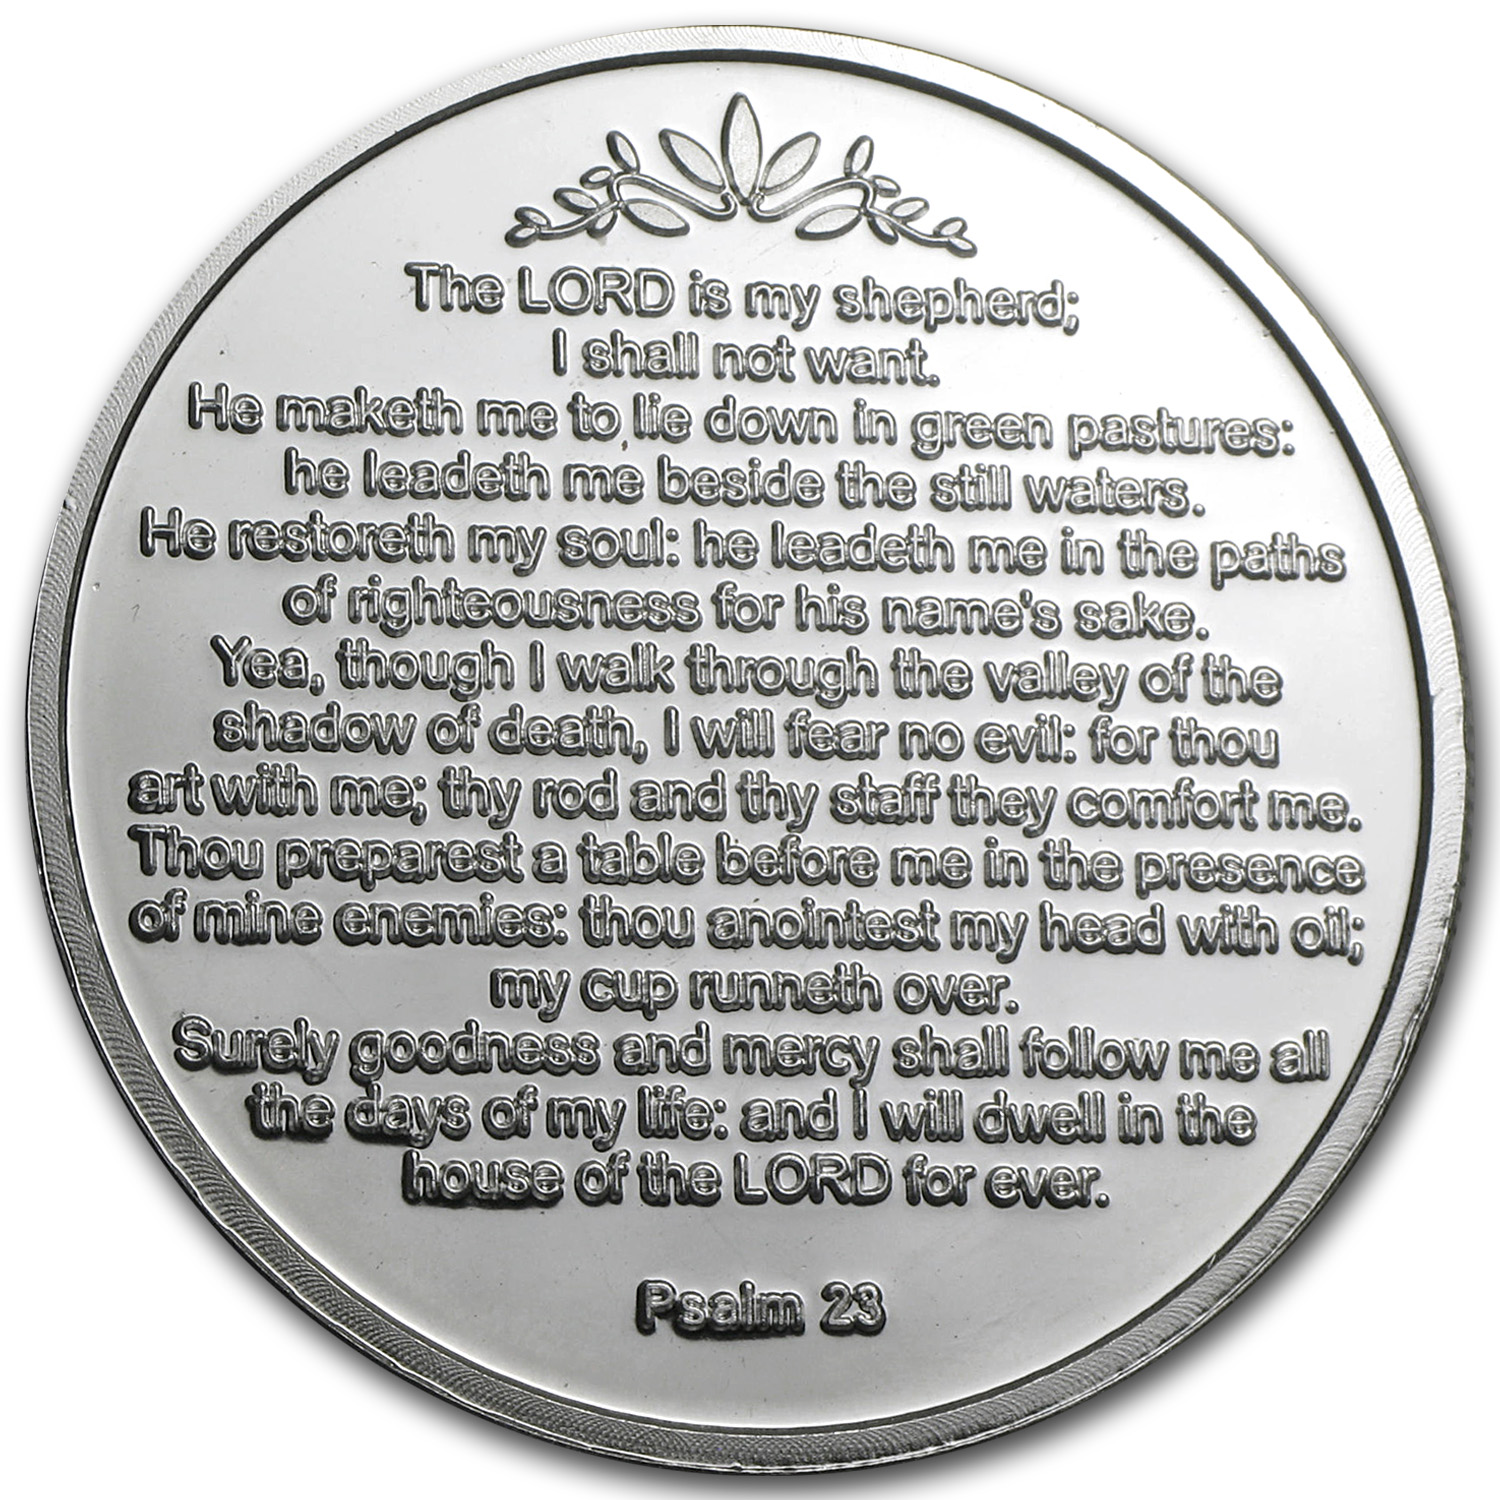 1 oz Silver Rounds - 23rd Psalm (w/Box & Capsule)